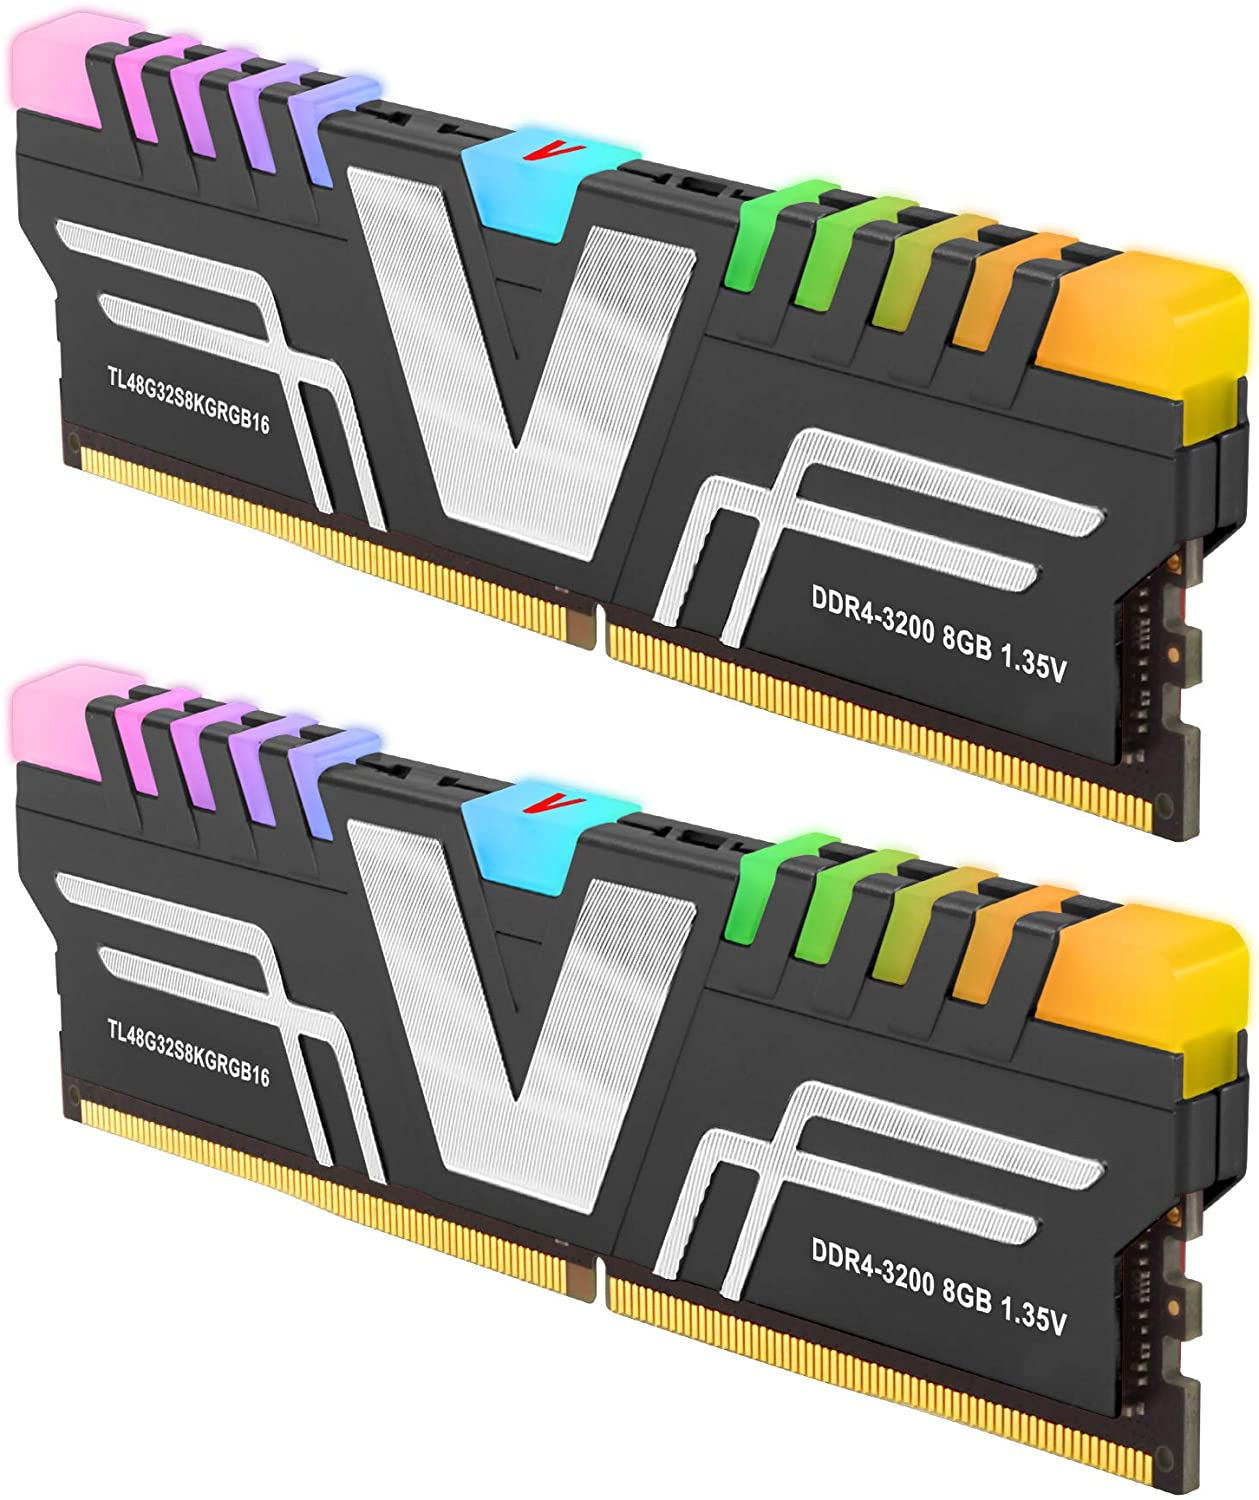 v-Color Prism RGB 16GB (2 x 8GB) DDR4 3200MHz (PC4-25600) CL16 1.35V Desktop Memory Module Ram Upgrade Gaming UDIMM -Grey (TL48G32S8KGRGB16)